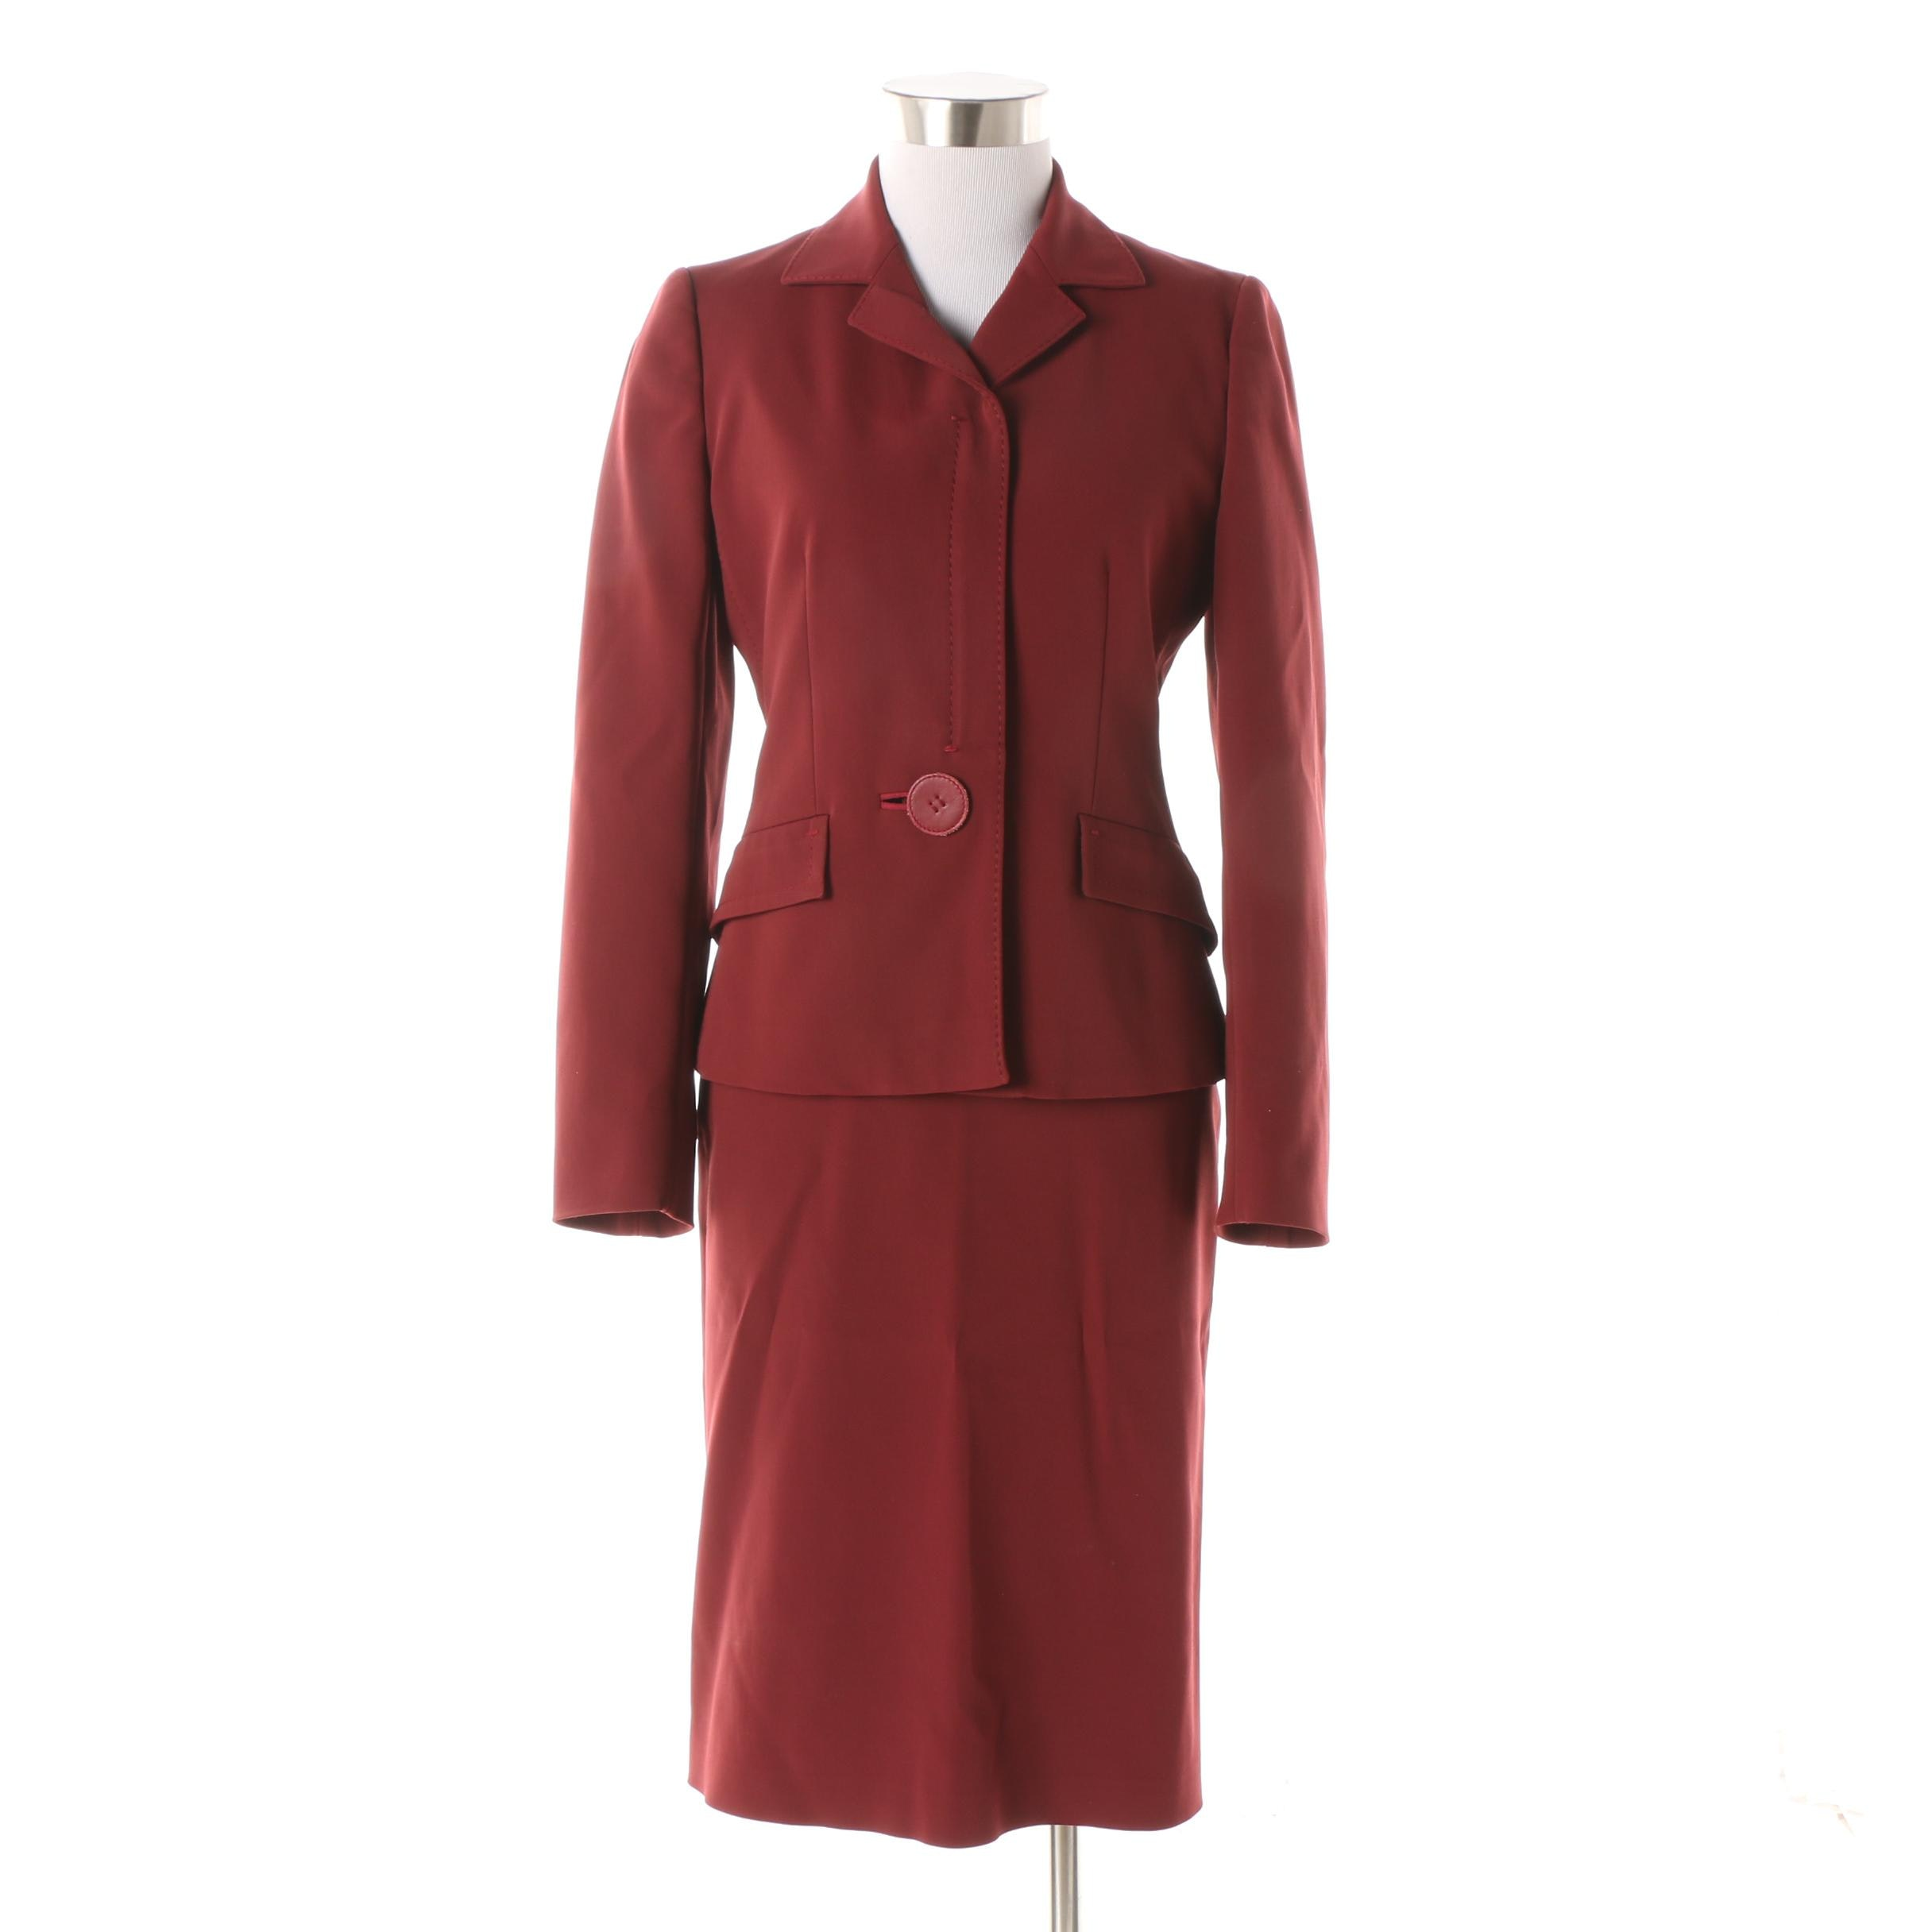 Prada Burgundy Skirt Suit with Leather Button Detail